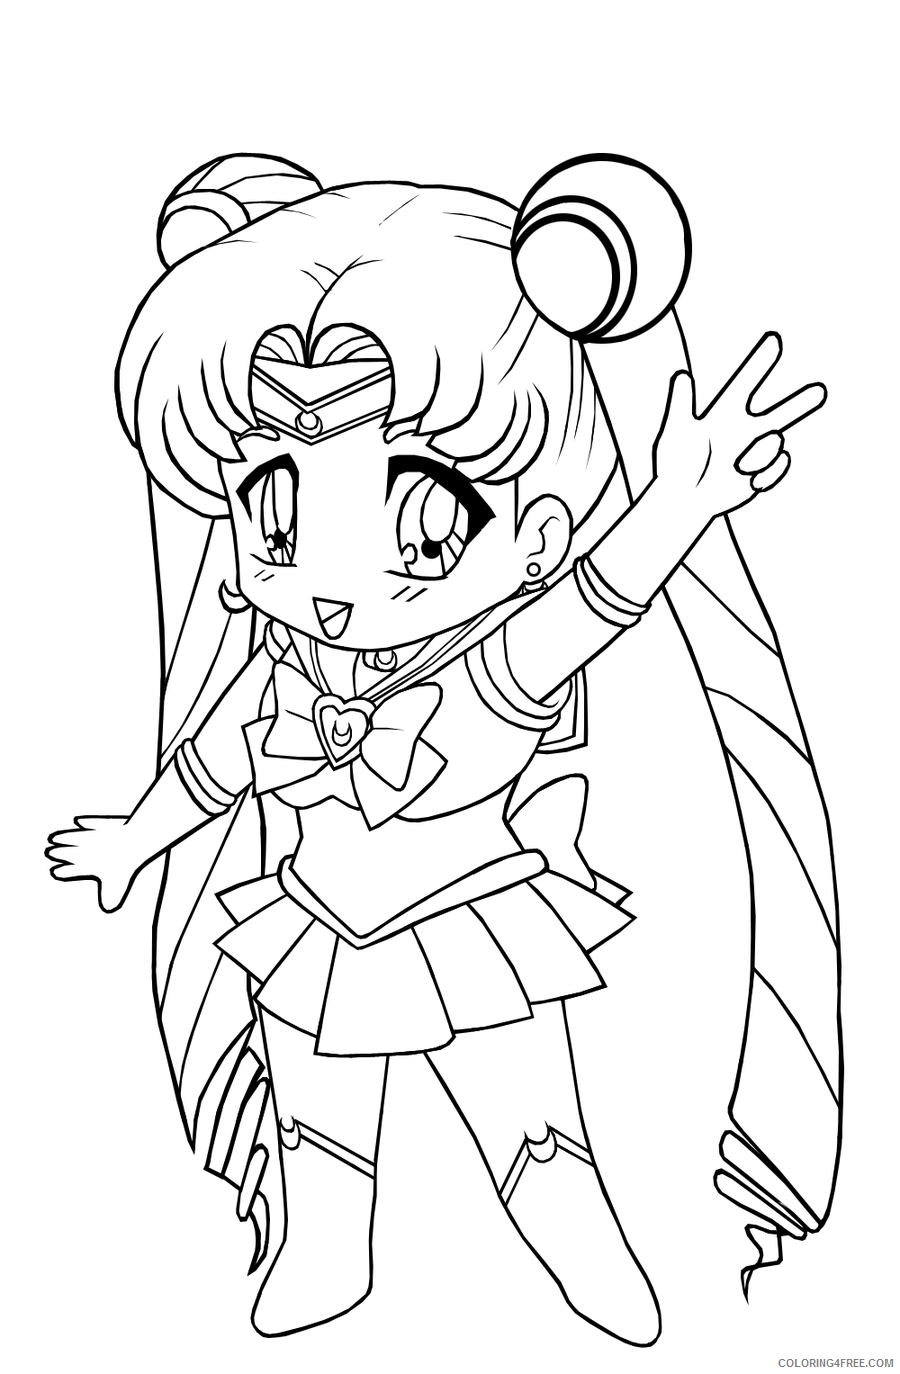 Free Miku Hatsune Coloring Pages, Download Free Clip Art, Free ... | 1374x900